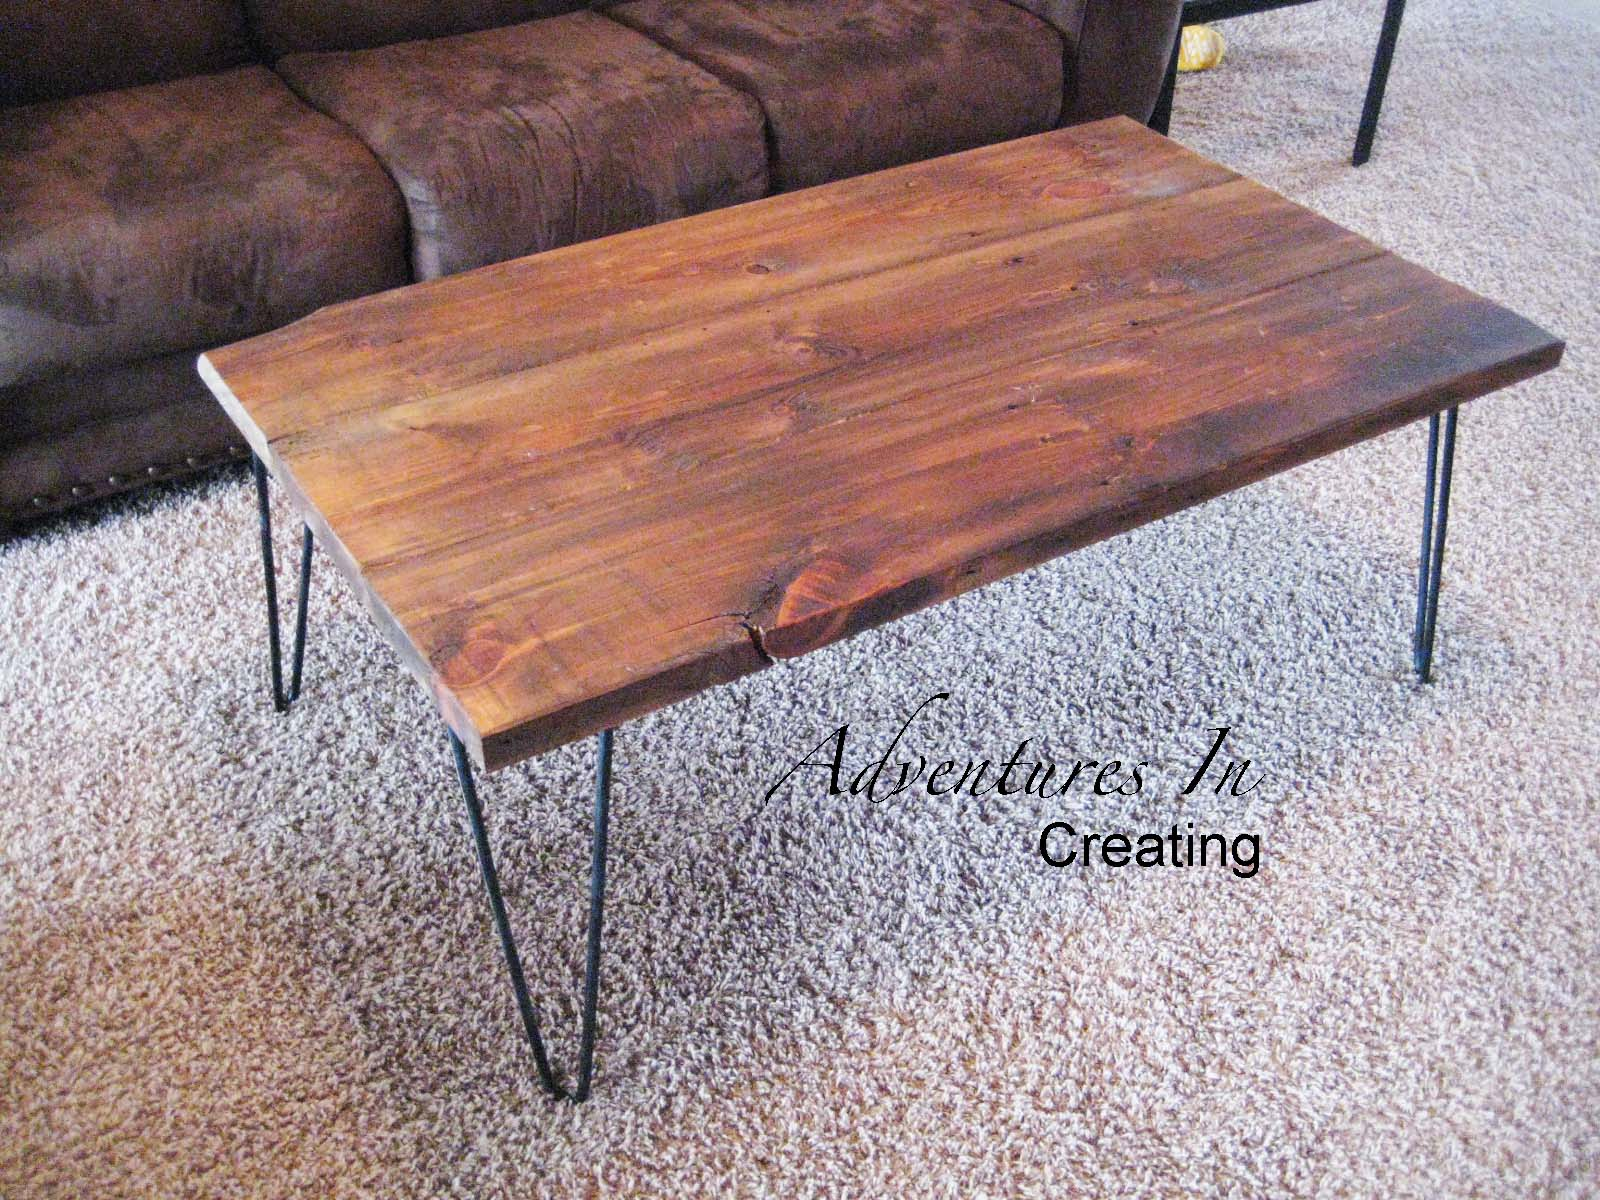 Reclaimed Wood Coffee Table with Hairpin Legs | Adventures in Creating ...